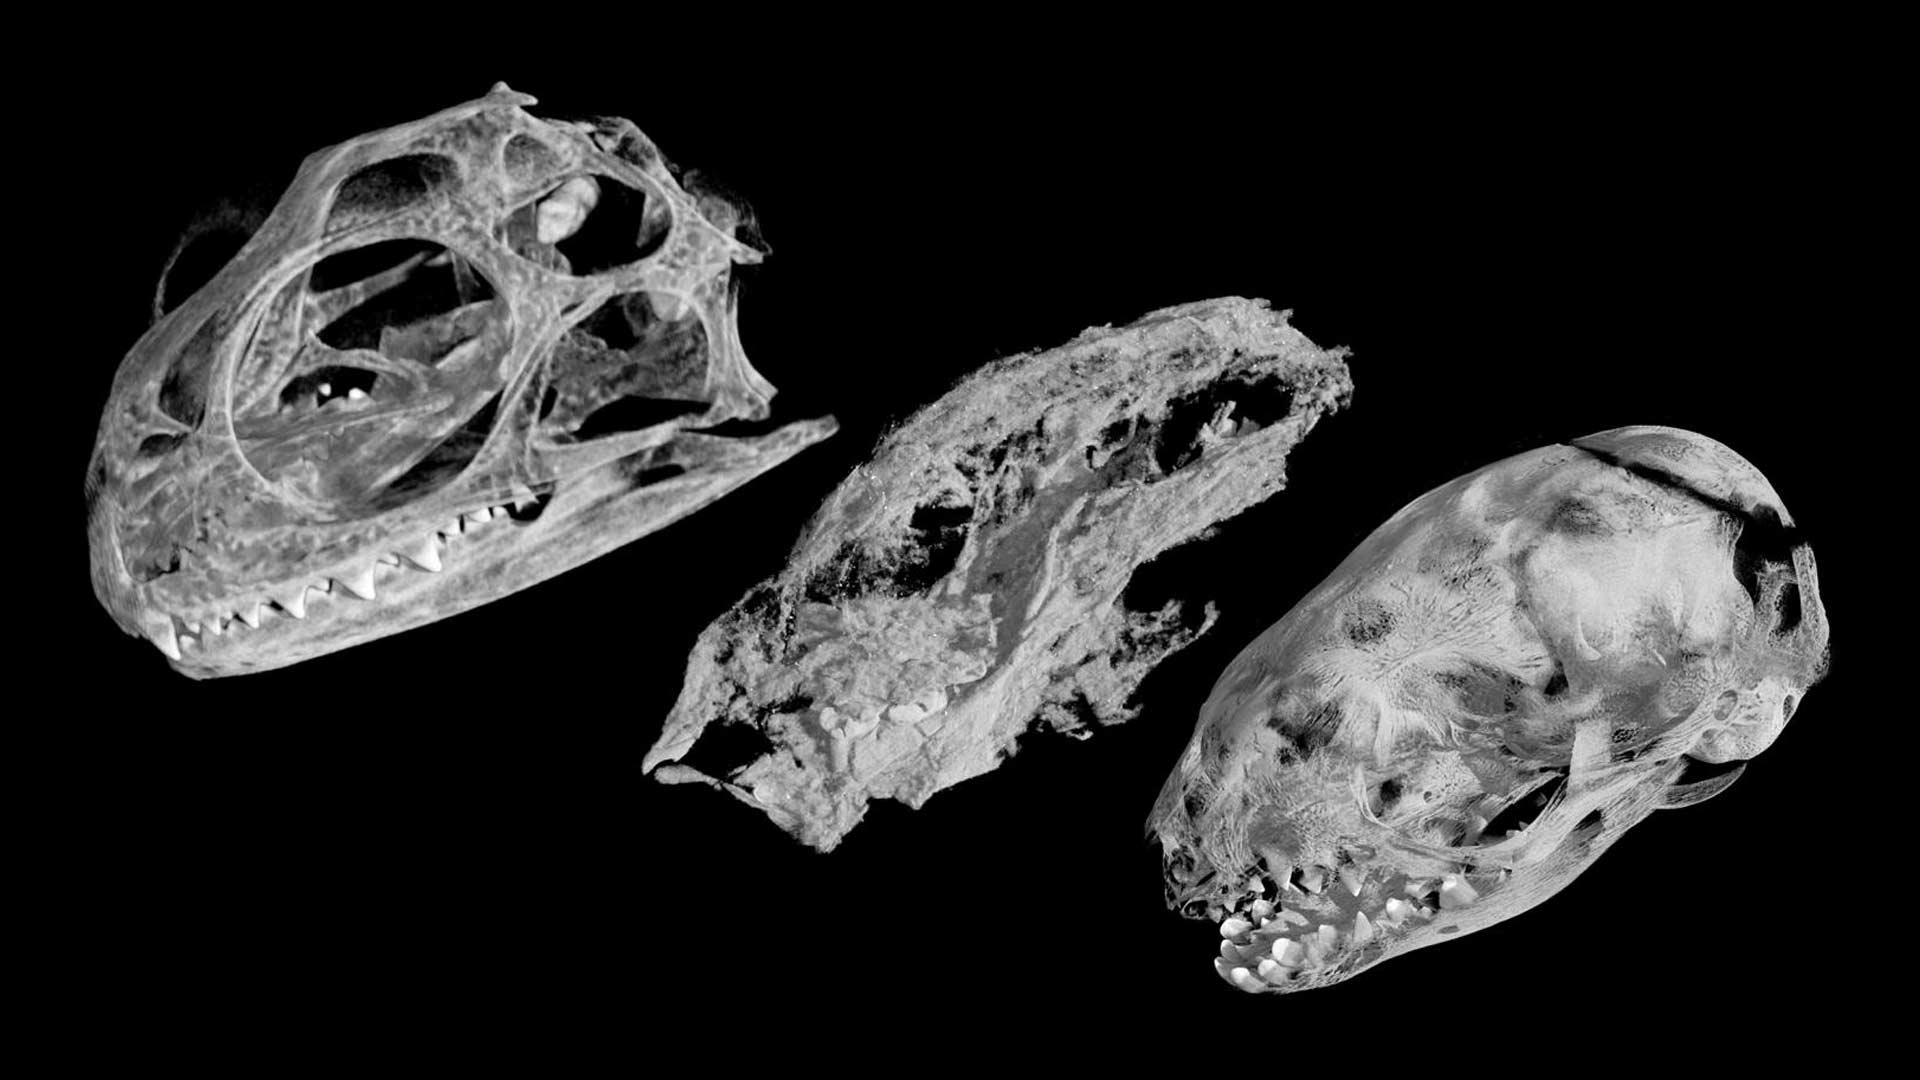 Skull CT scans of, left to right, a modern tuatara hatchling, Kayentatherium offspring, and a 27-day-old opossum, shown at the same magnification.